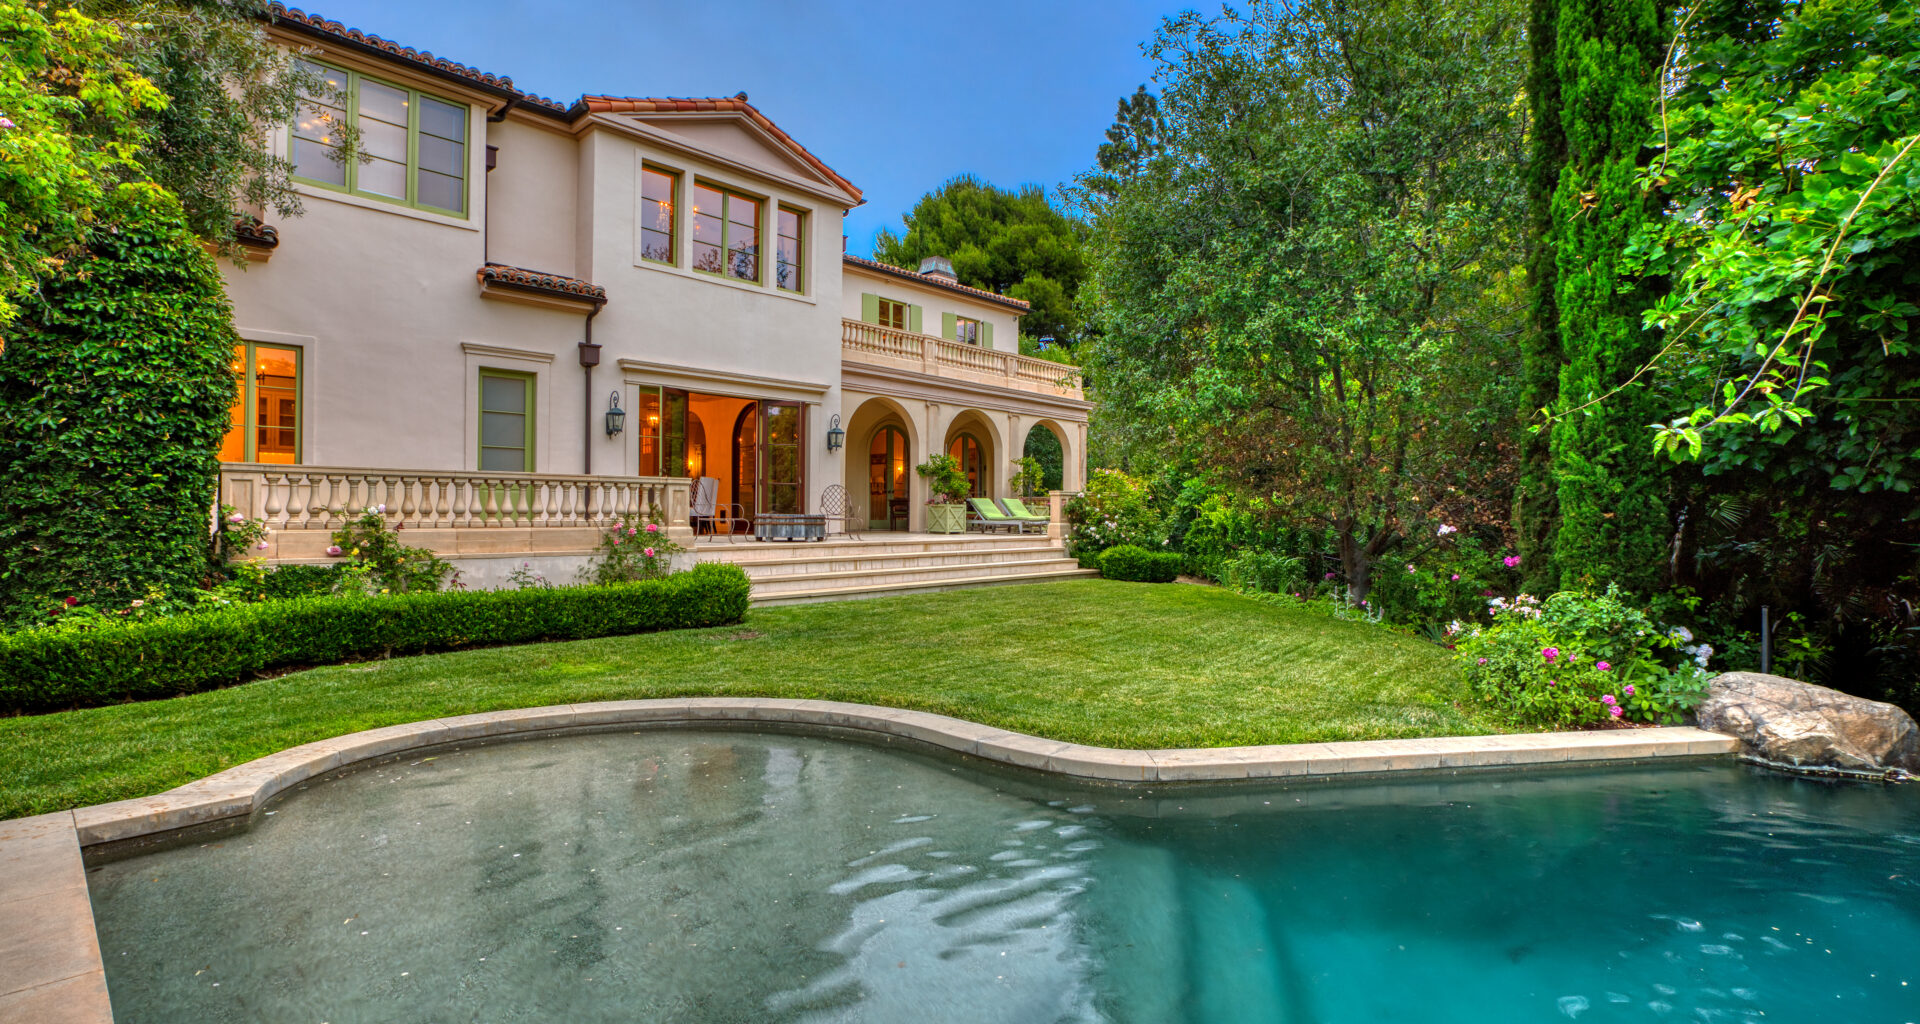 876 Muskingum Avenue, Anthony Marguleas, Pacific Palisades, Real Estate, Paul Johnson